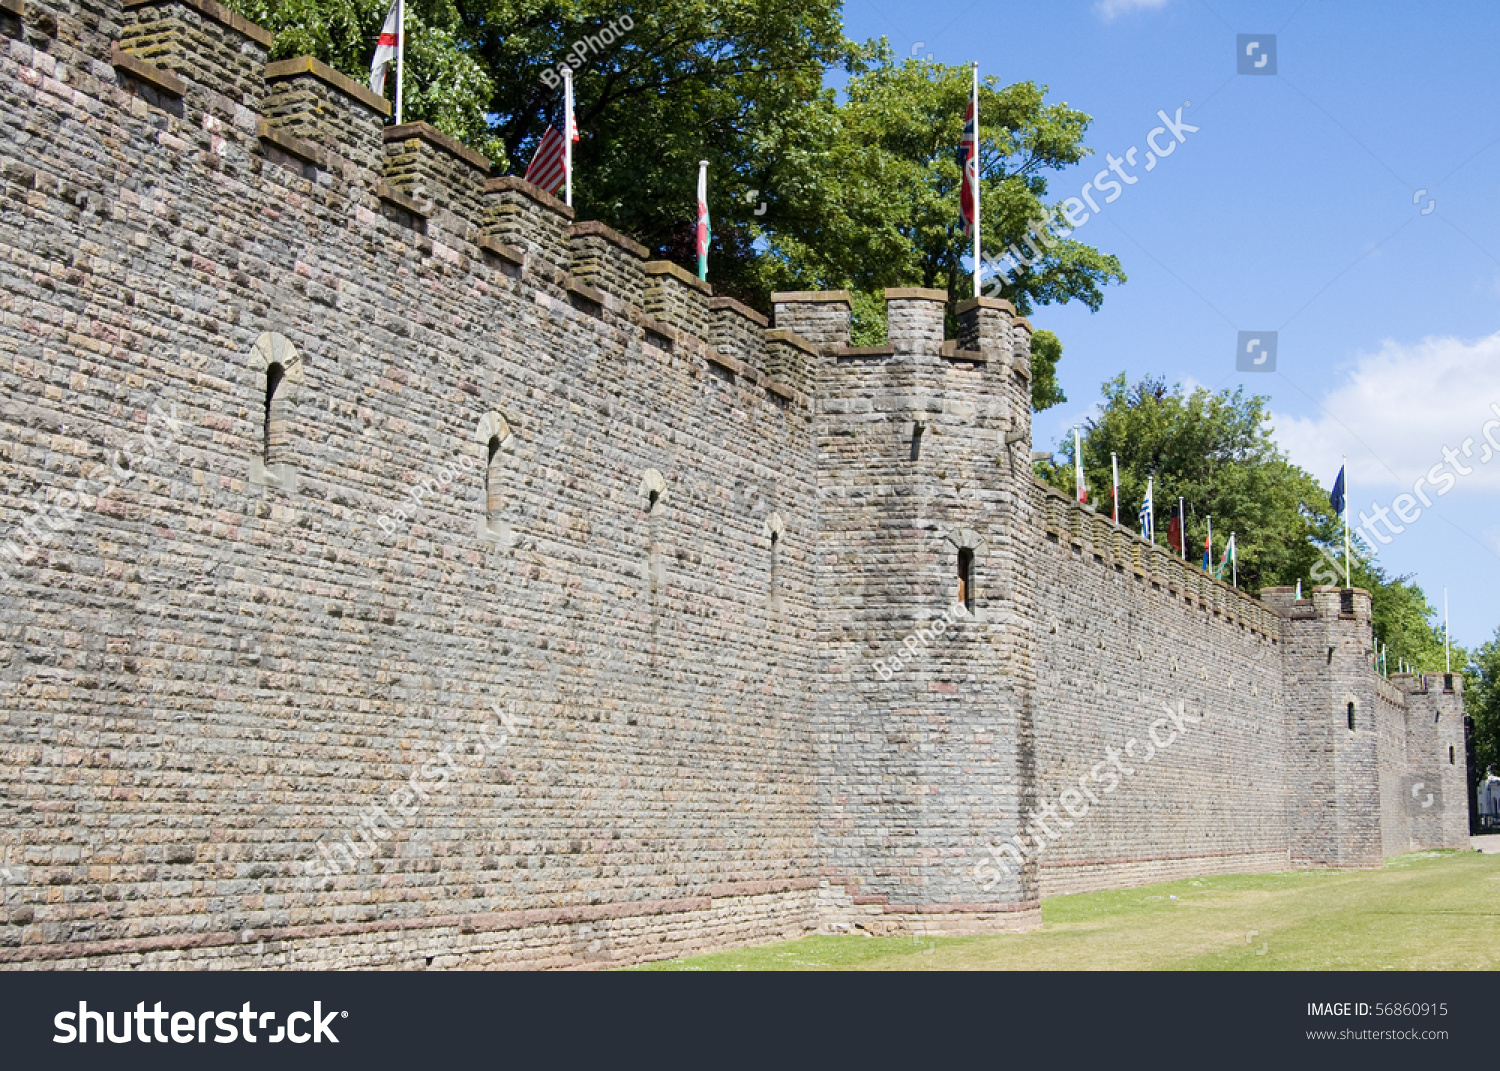 Curtain Wall Medieval Times : Cardiff castle ramparts part of the and curtain